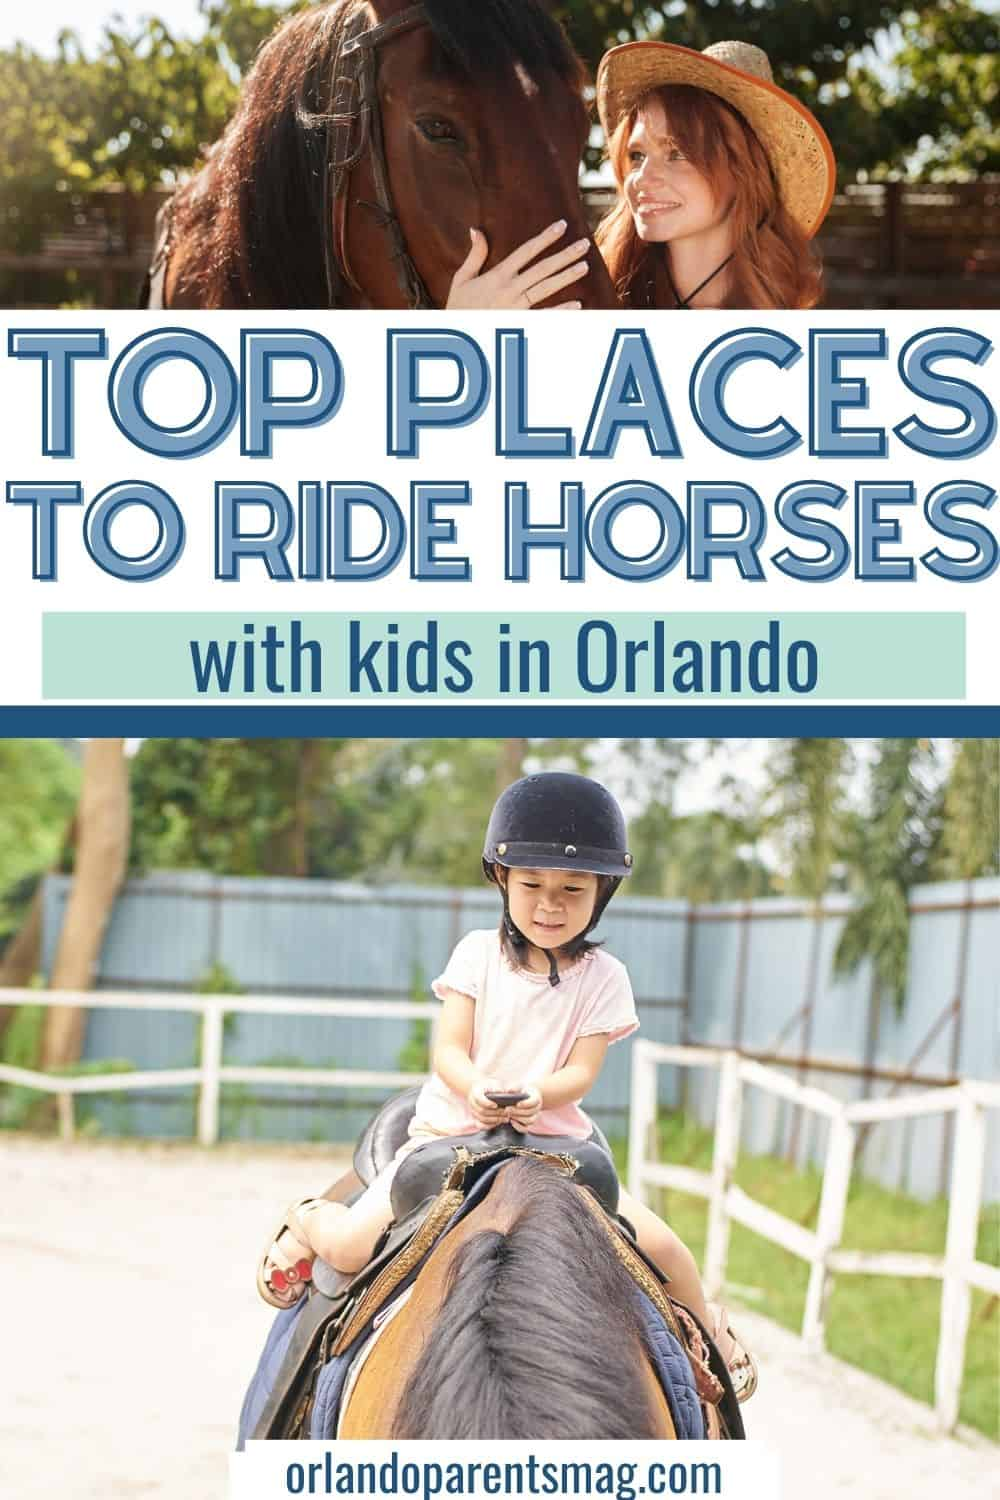 horseback riding for kids in orlando